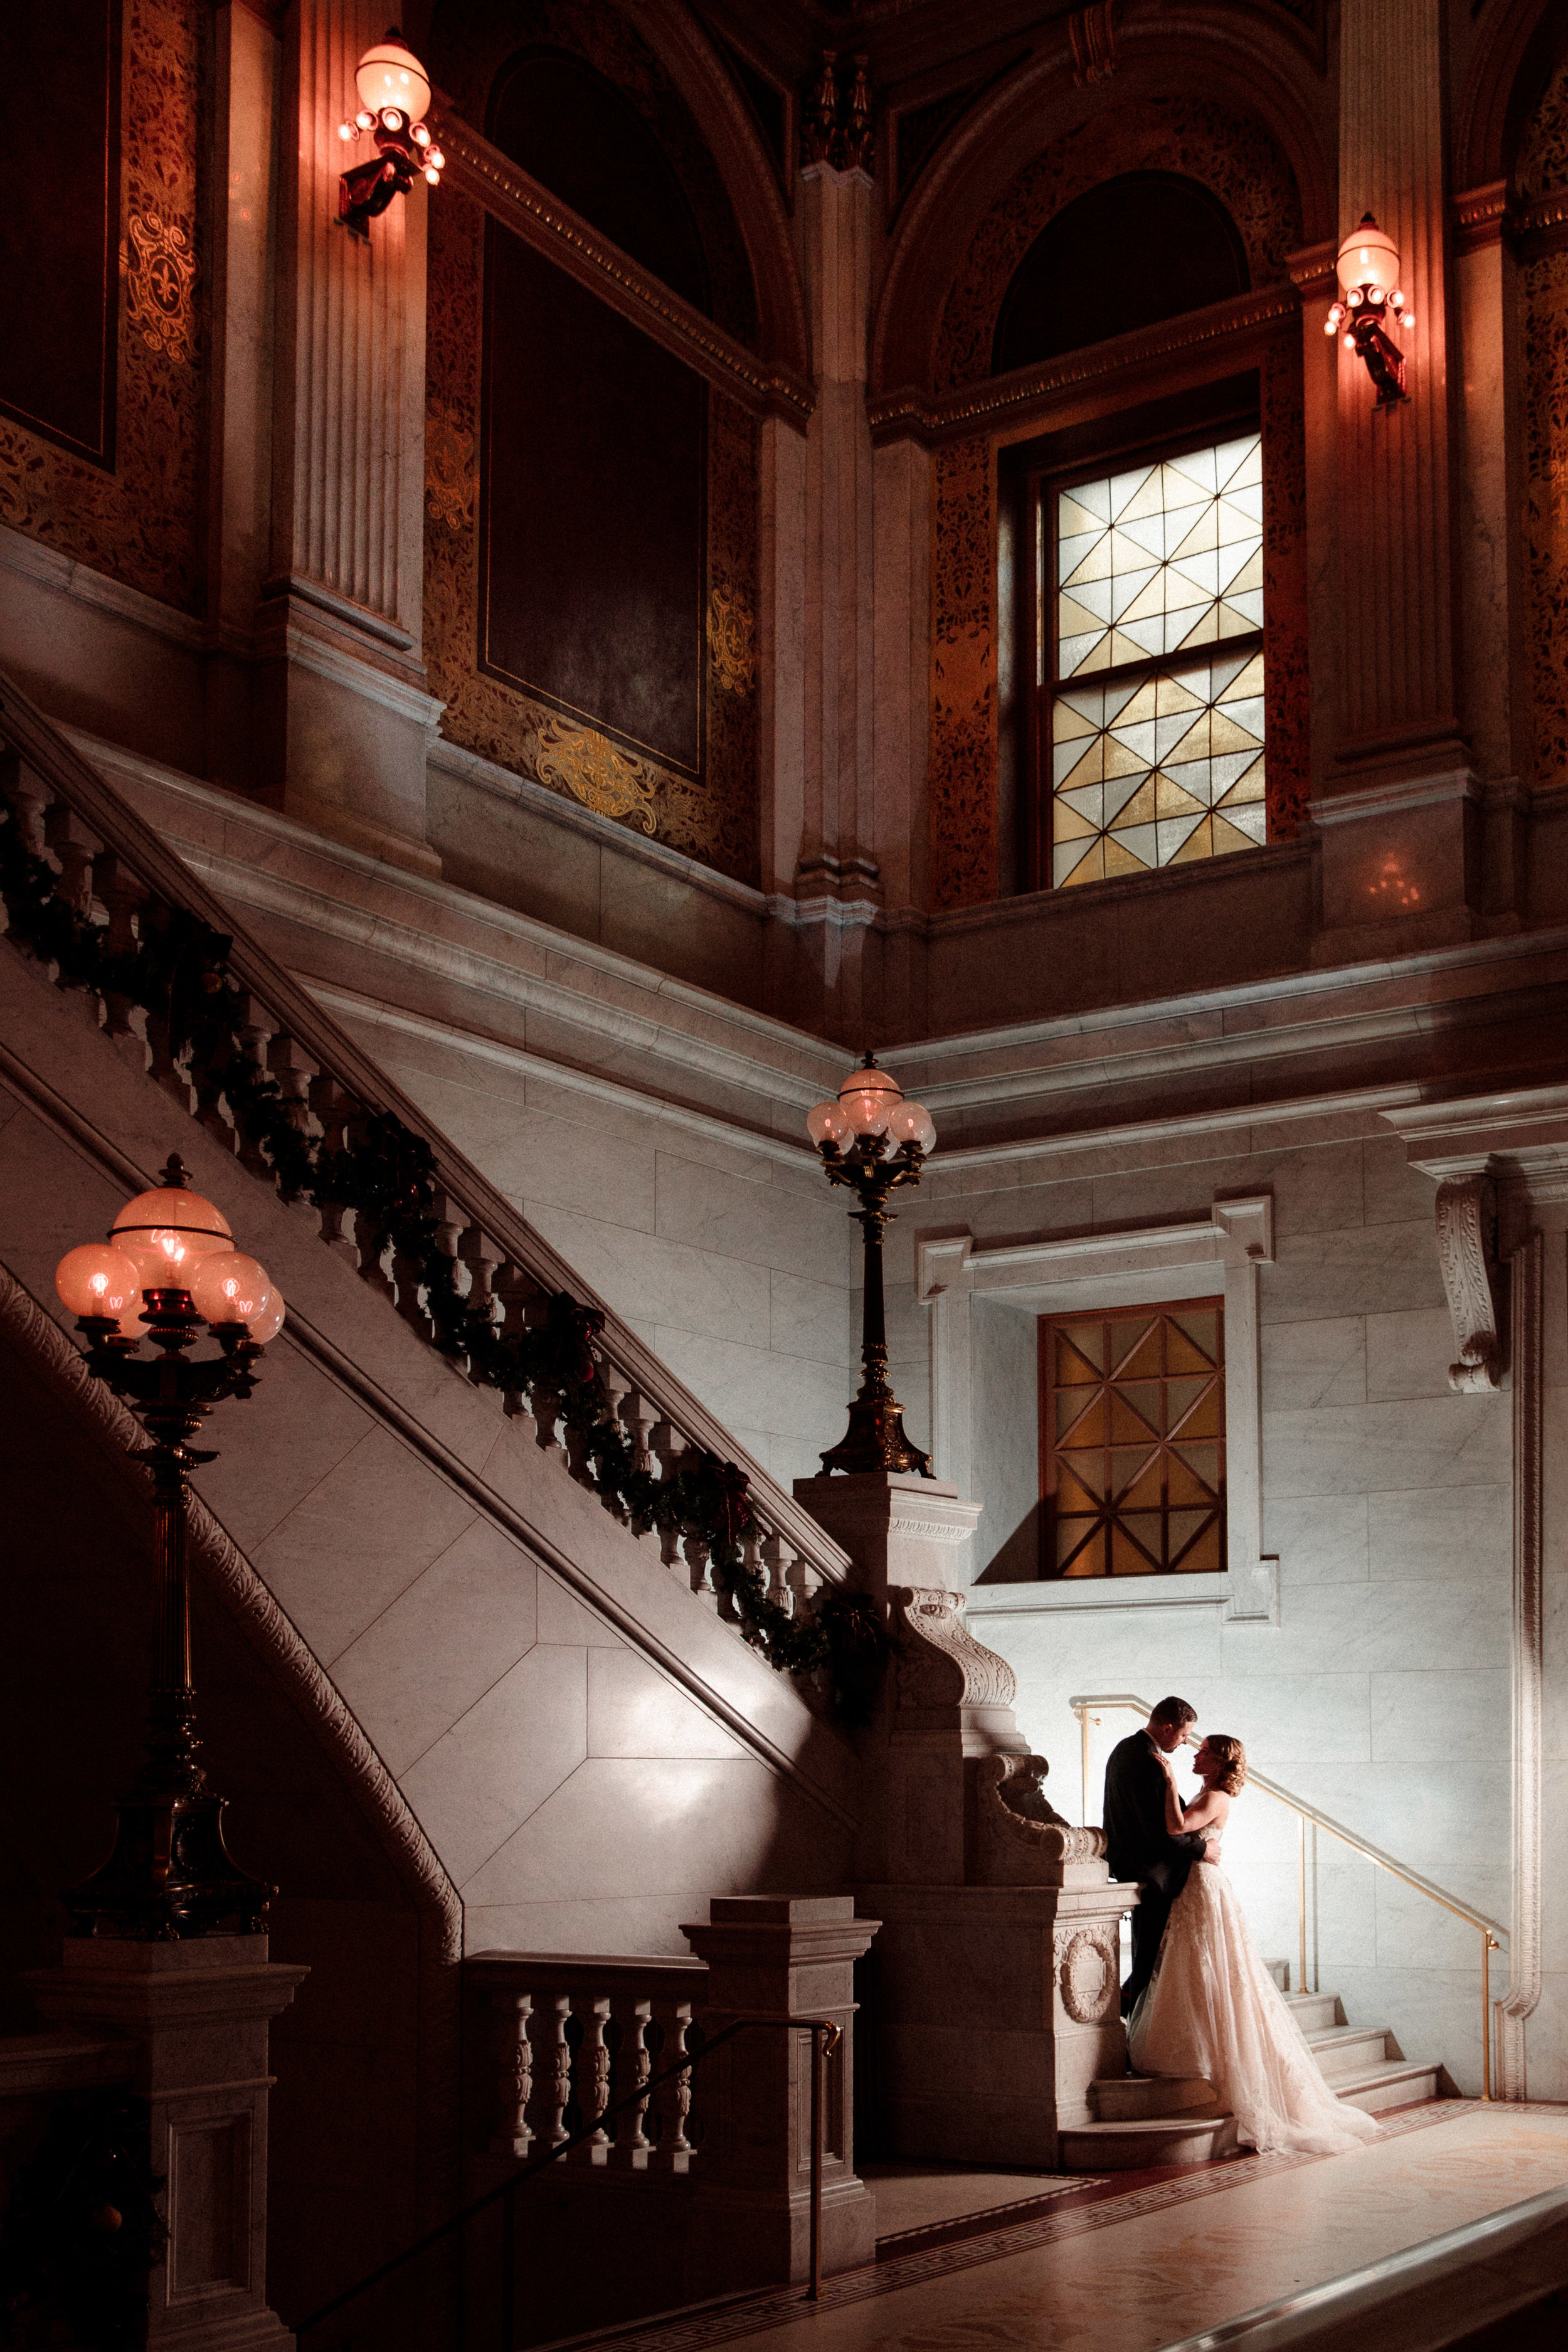 A bride and groom posing at the edge of a stairway while looking into each other's eyes